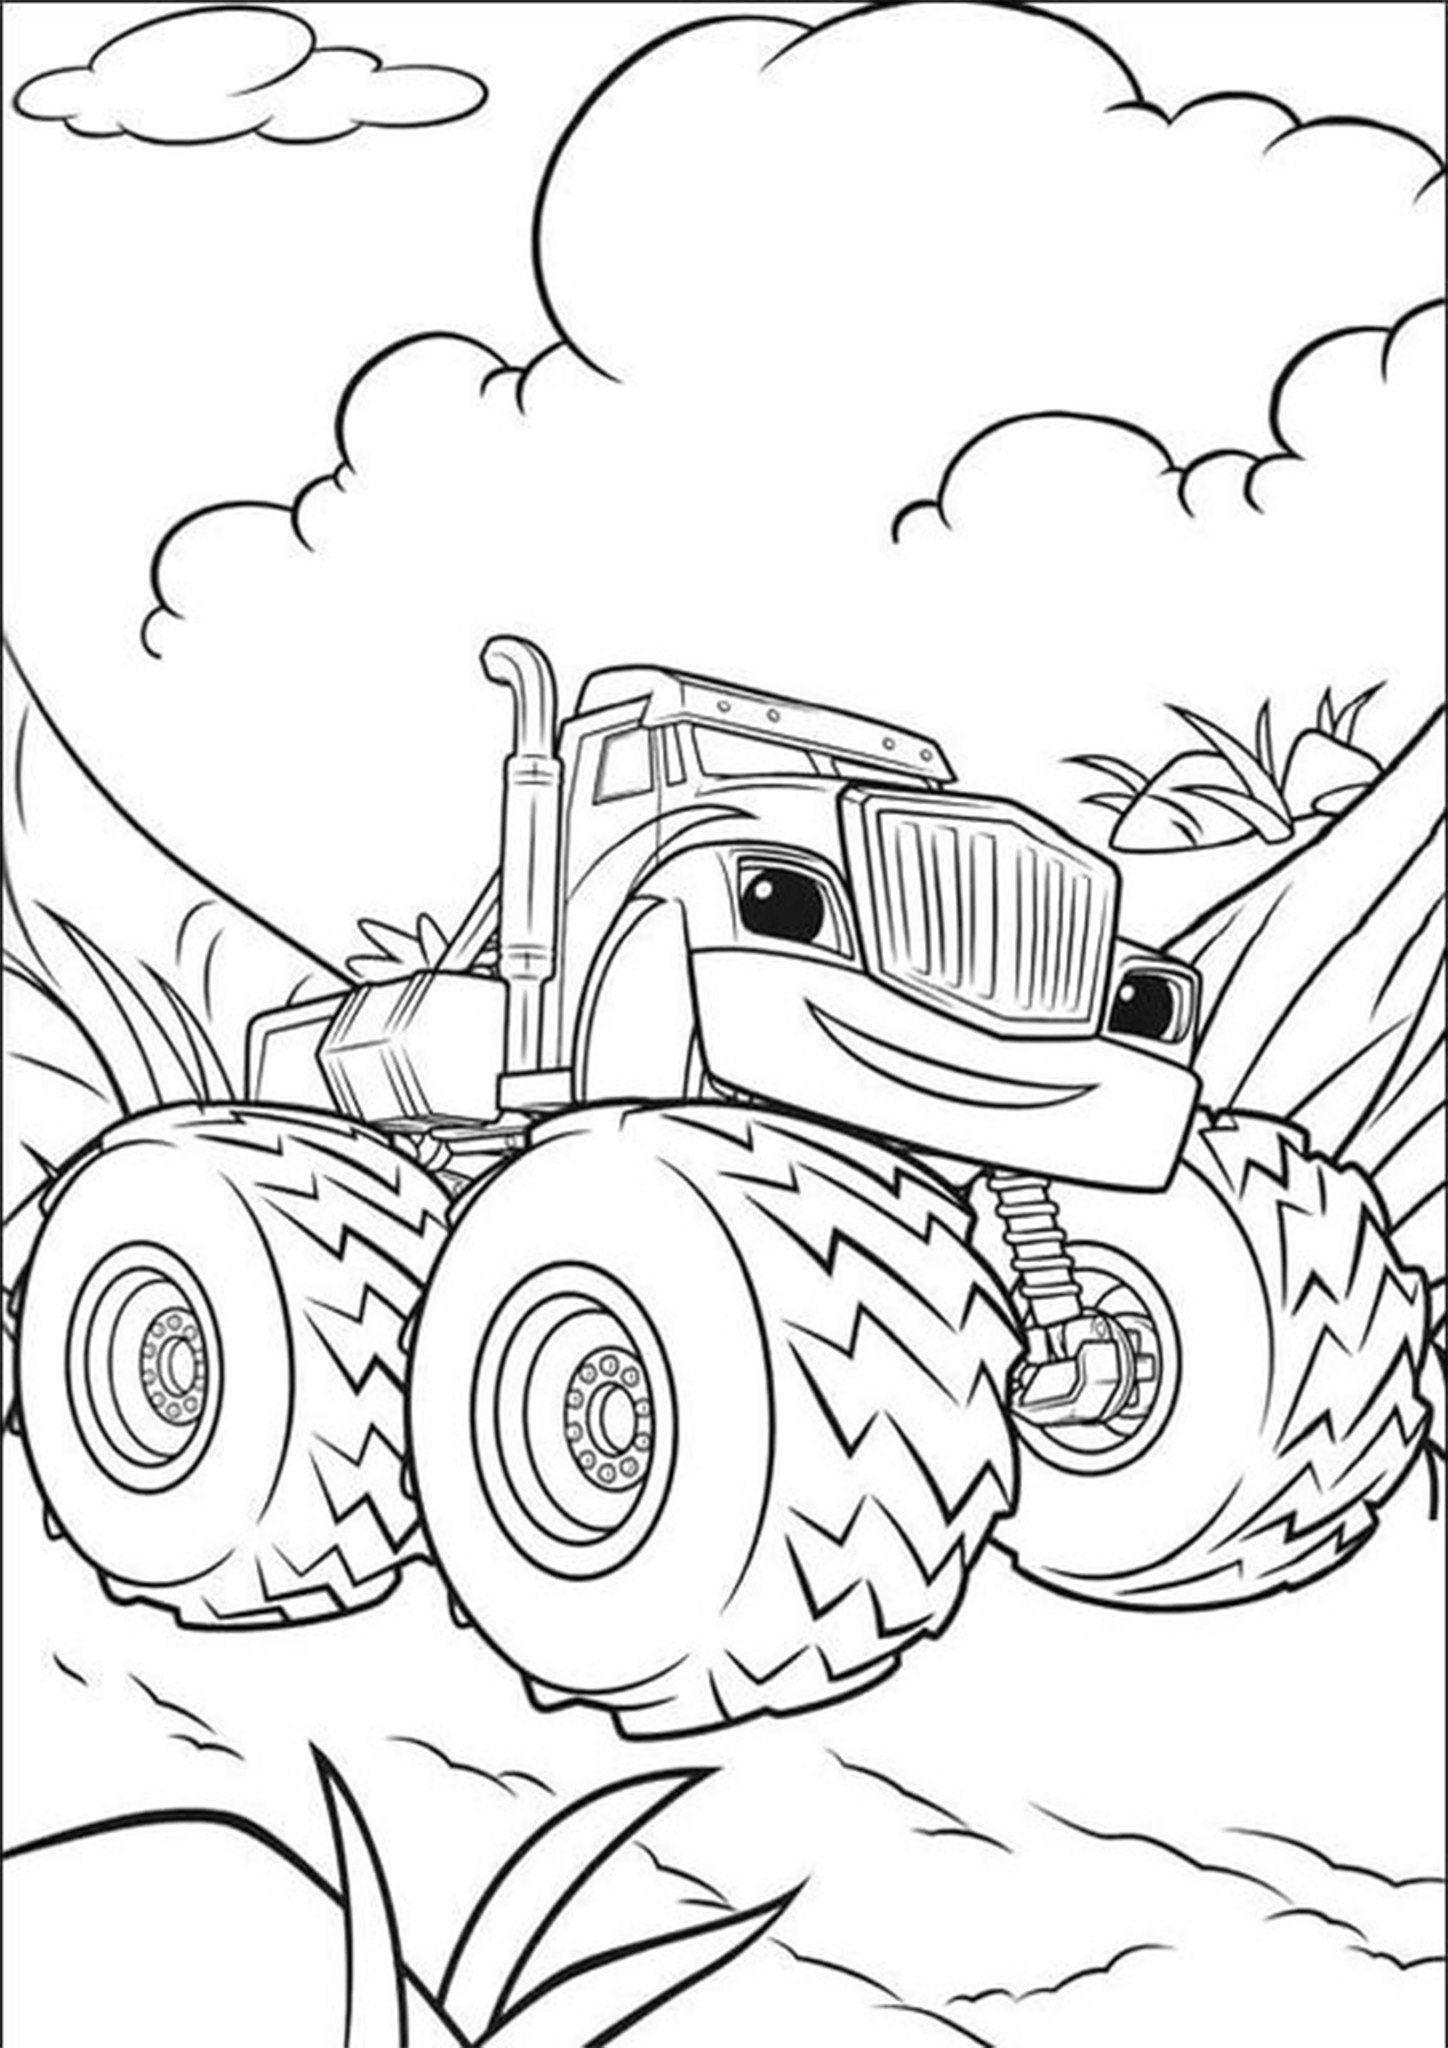 Monster Truck Coloring Pages Free Easy To Print Monster Truck Coloring Pages Tulamama Monster Truck Coloring Pages Truck Coloring Pages Mario Coloring Pages